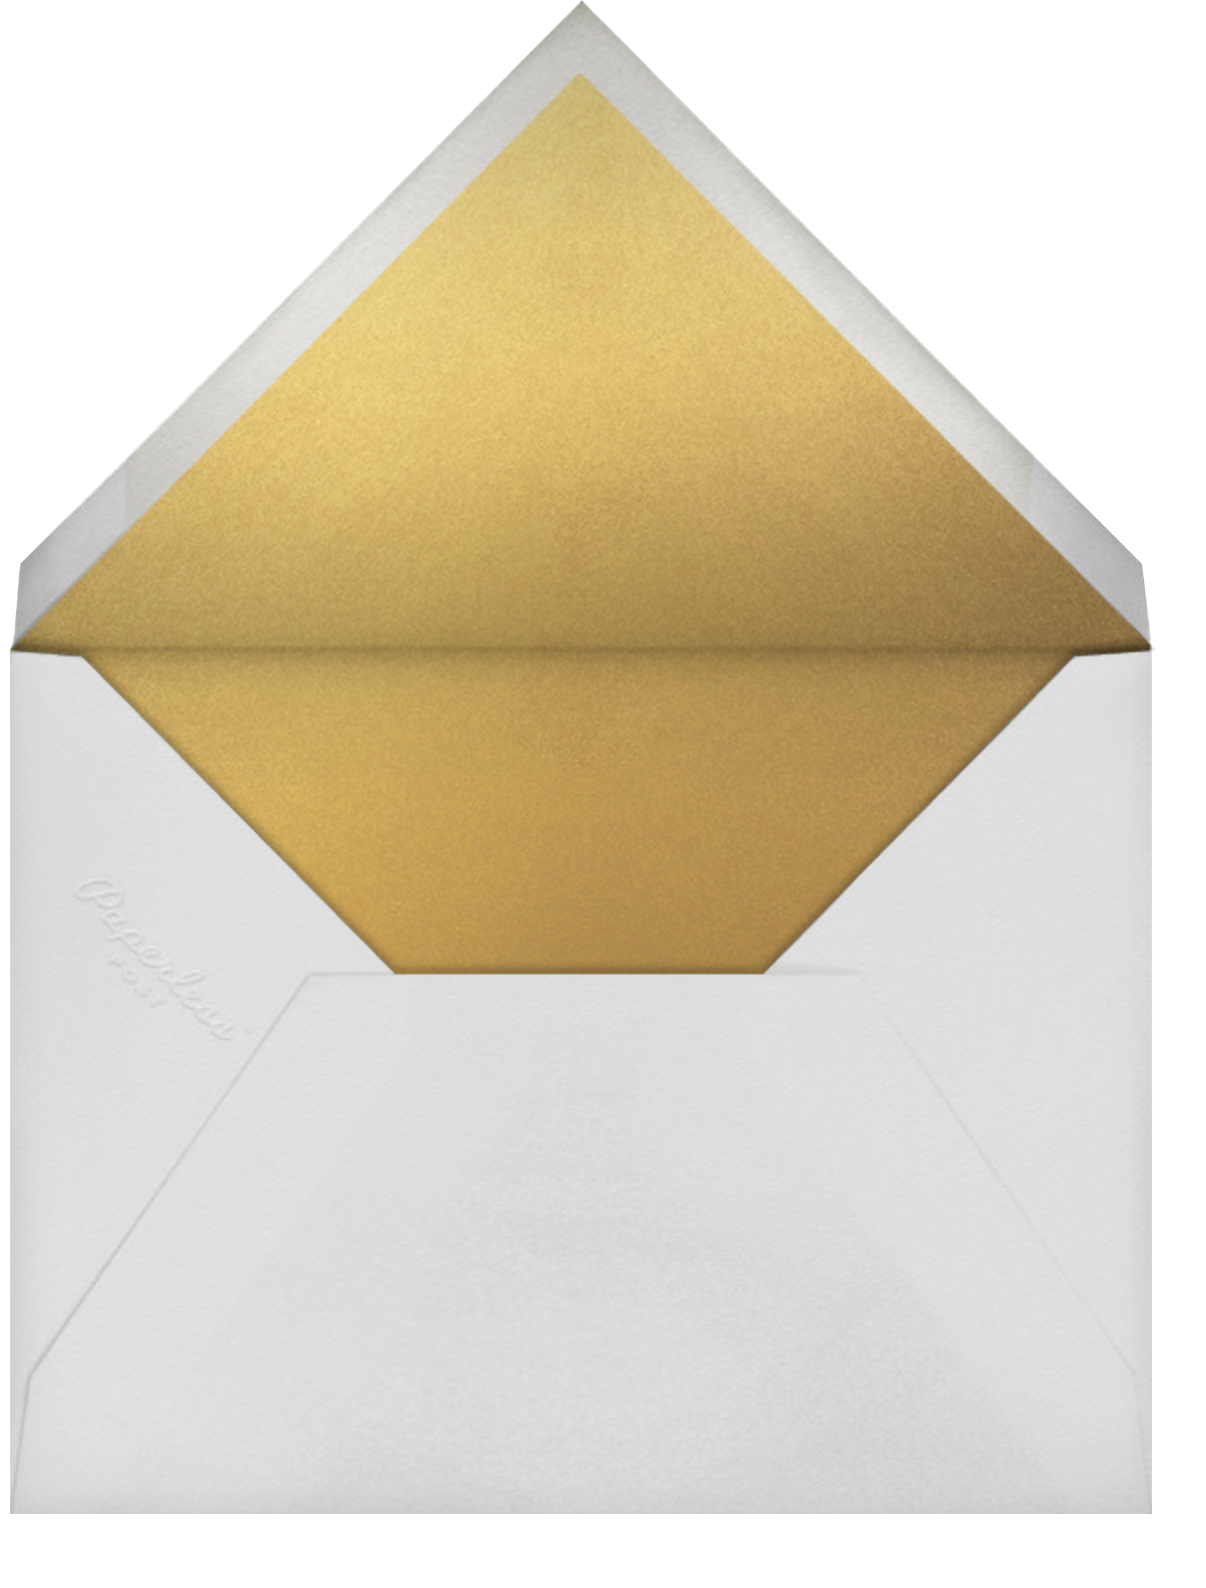 Amory - Pewter Gray - Paperless Post - Envelope